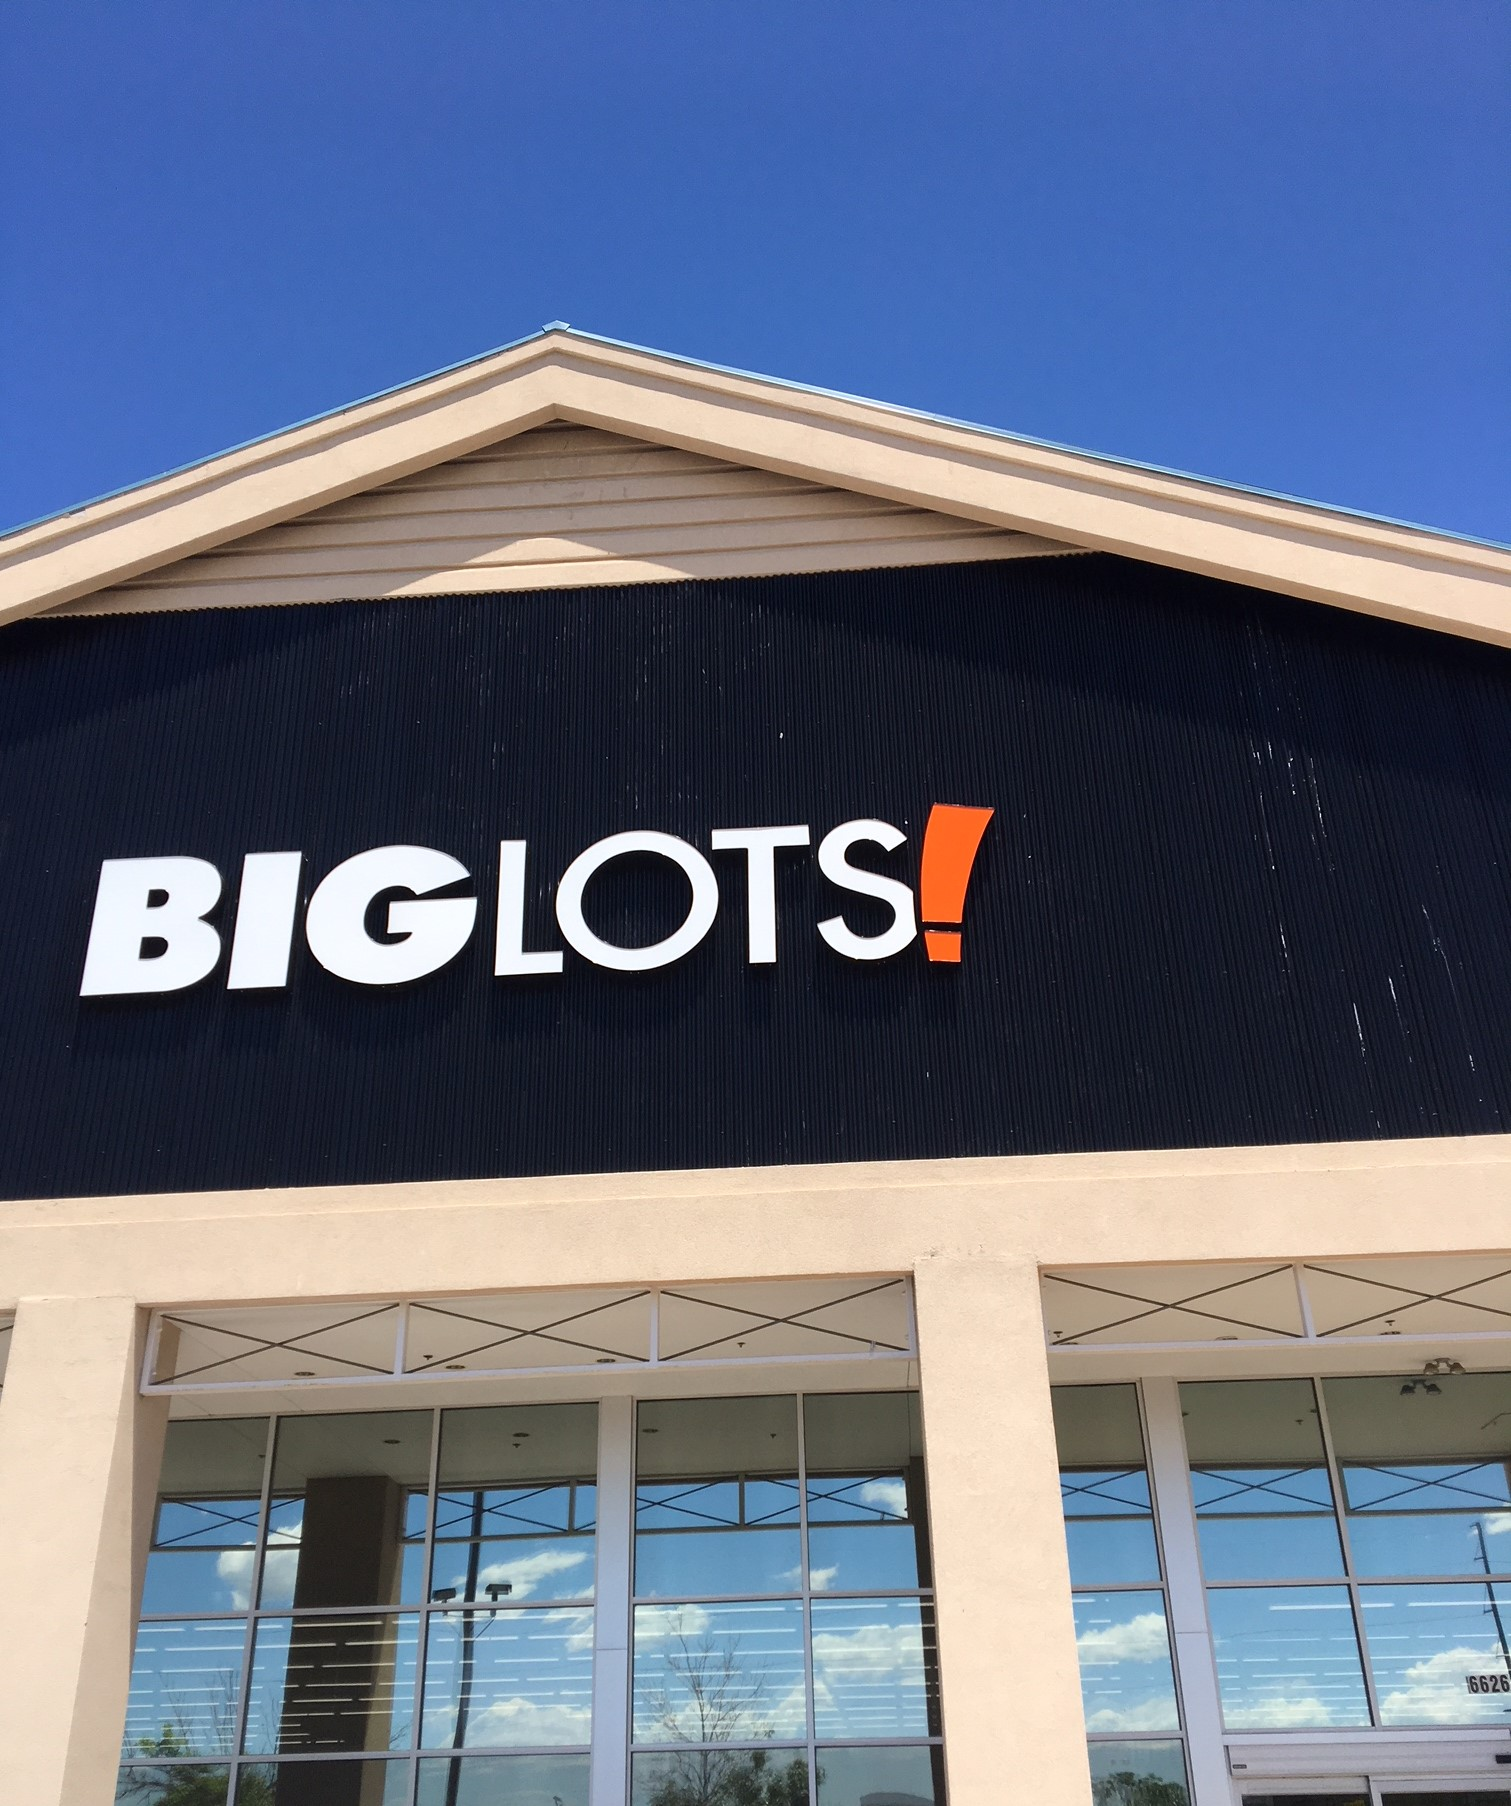 Aurora, CO Big Lots Store #4586